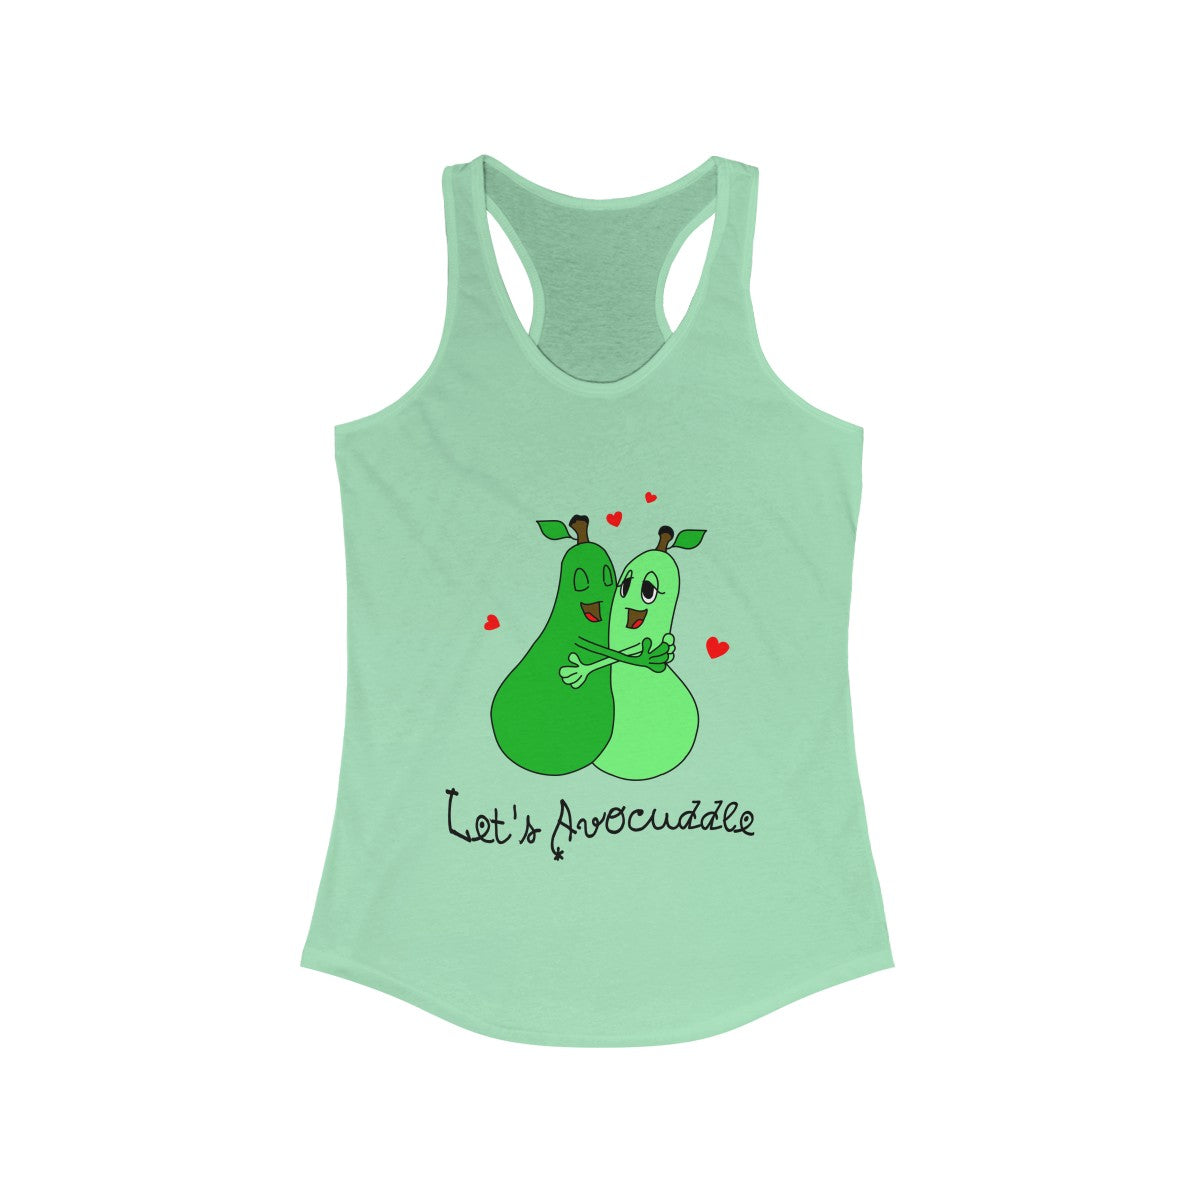 Lets Avocuddle Ladies Tank Top